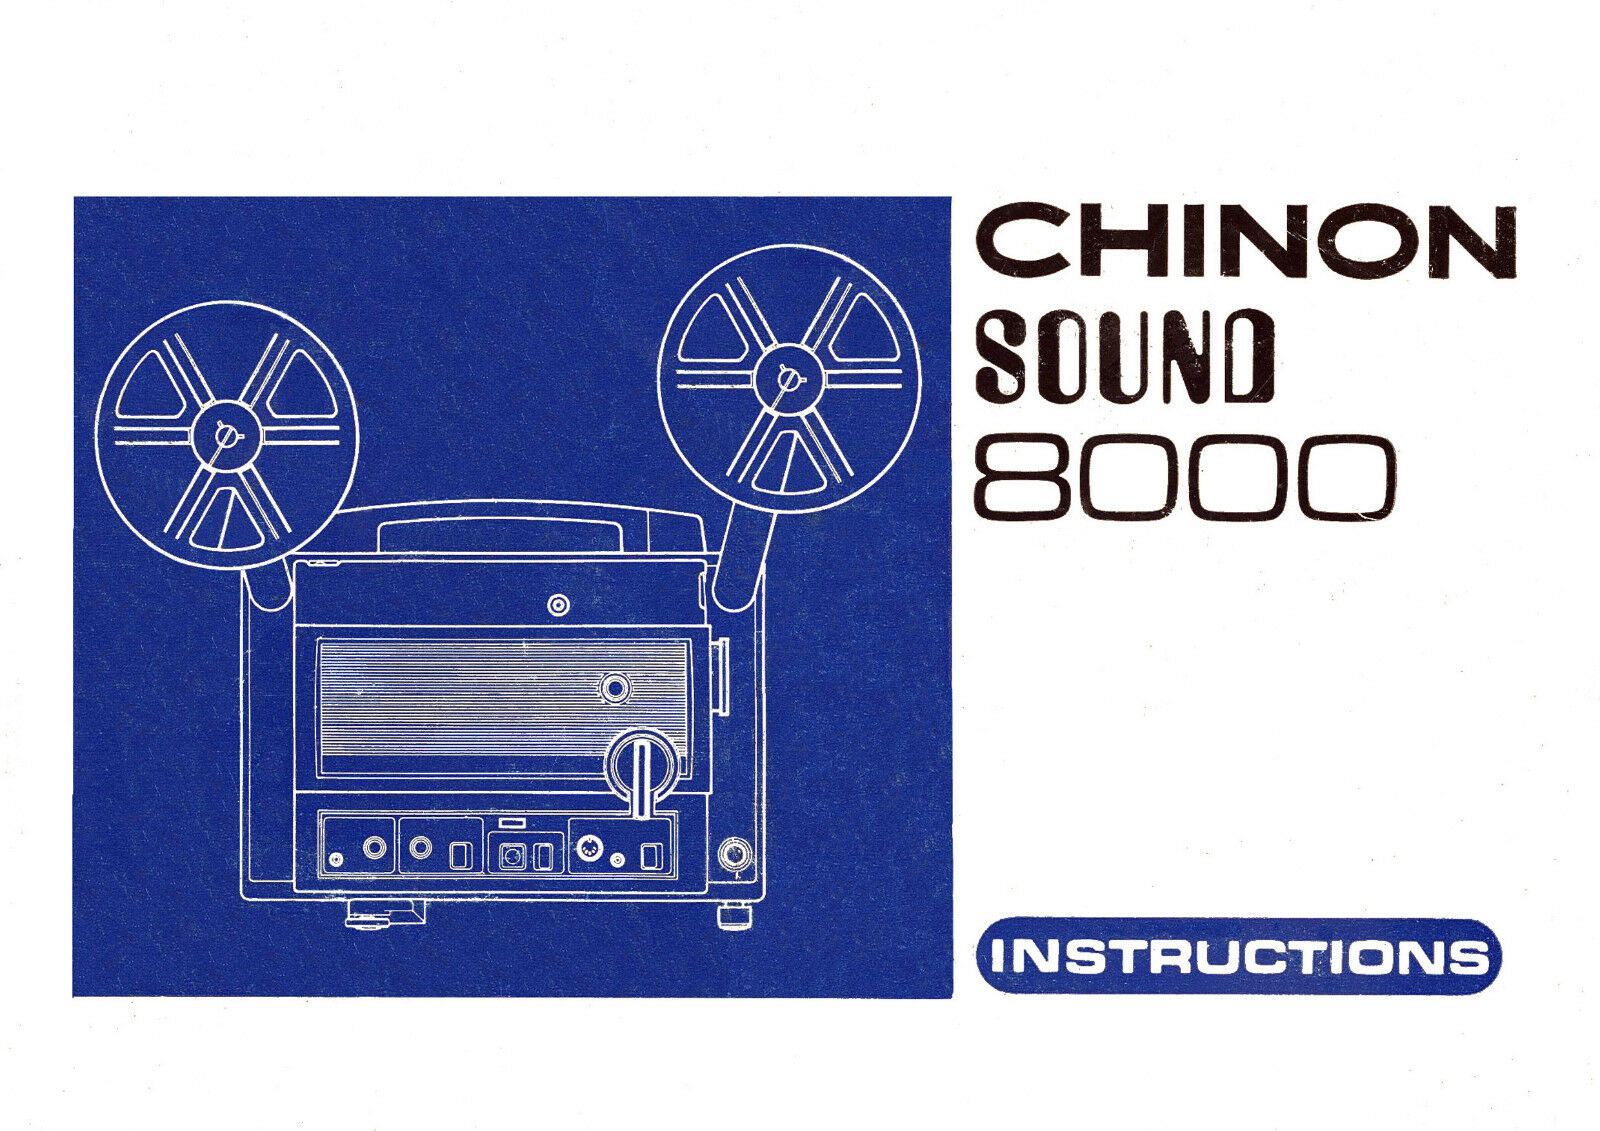 CHINON SOUND 8000 8mm Cine Projector Instruction Book